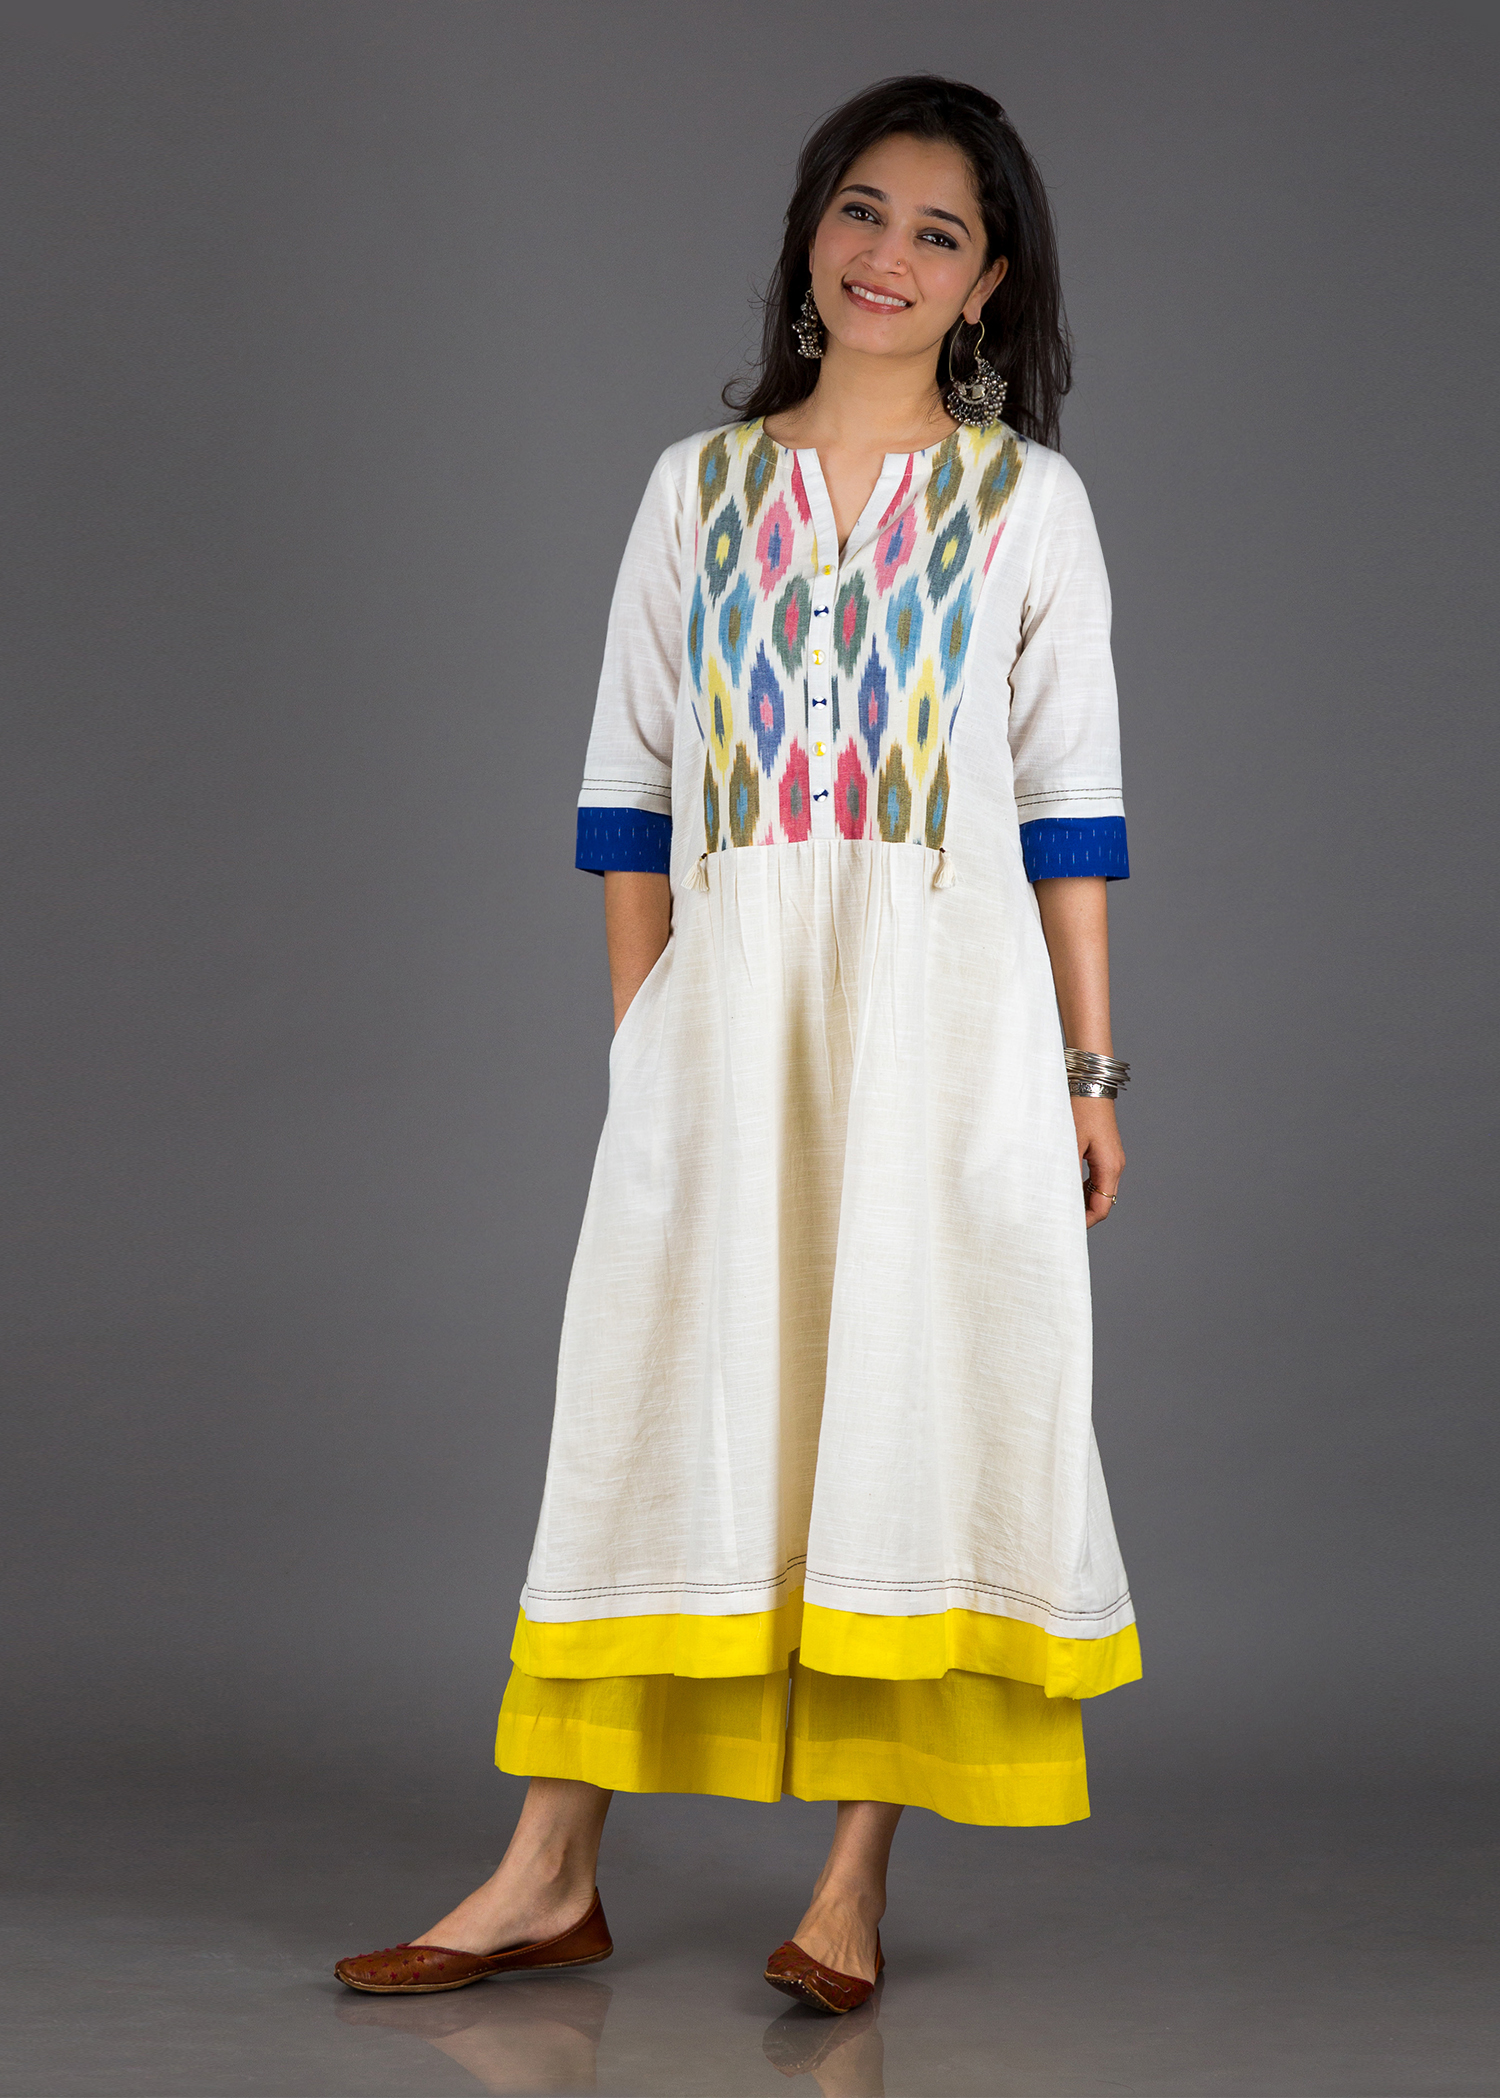 The Candy Floss Kurta - Handwoven Cotton with Handwoven Ikat Yoke